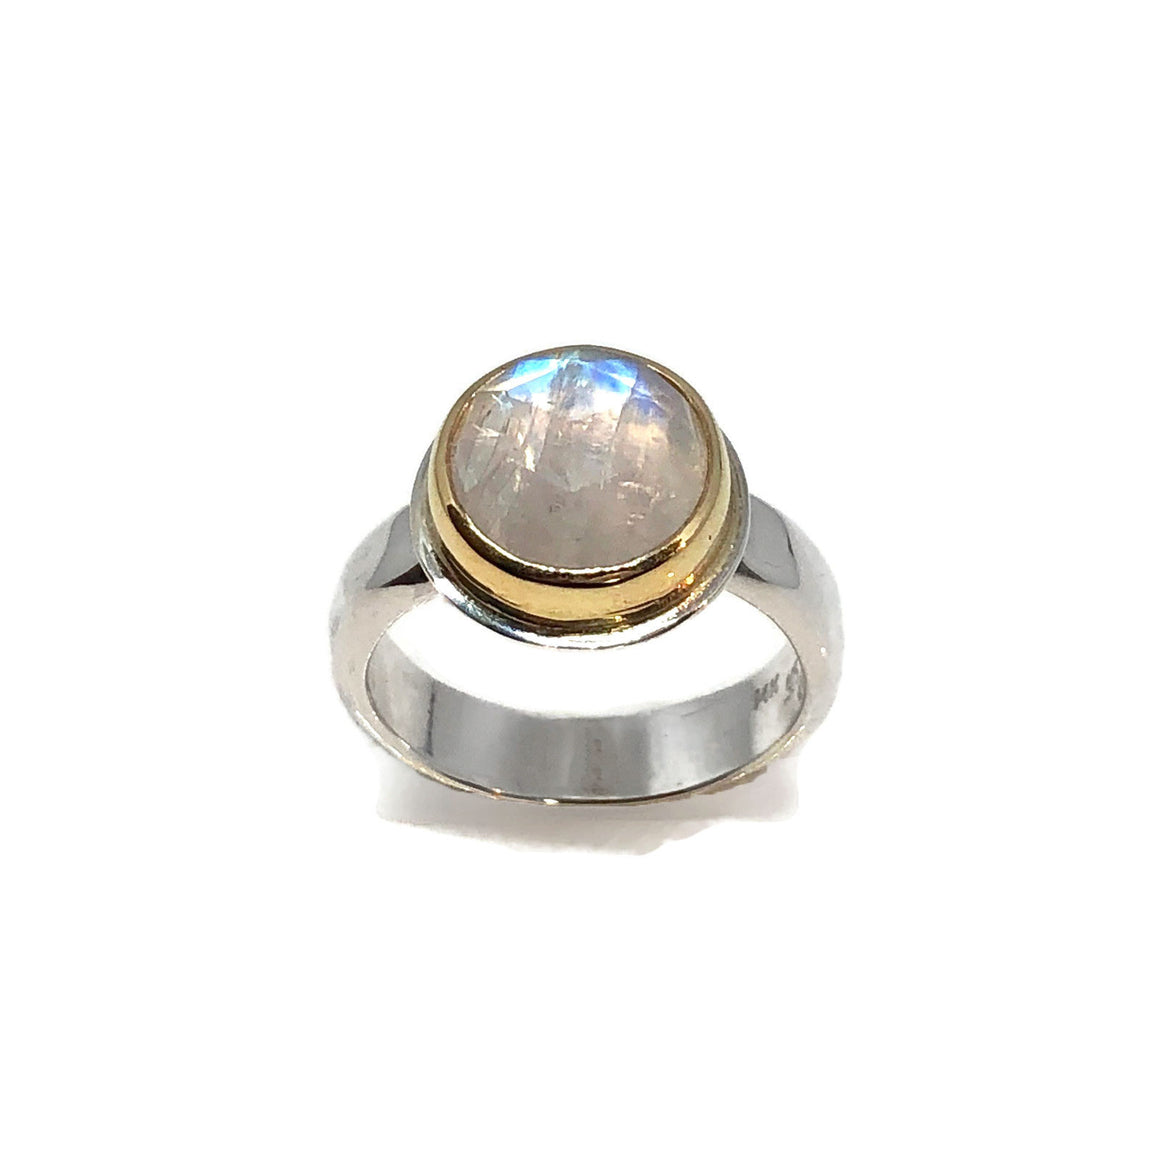 Moonstone Engagement Ring Silver and Gold